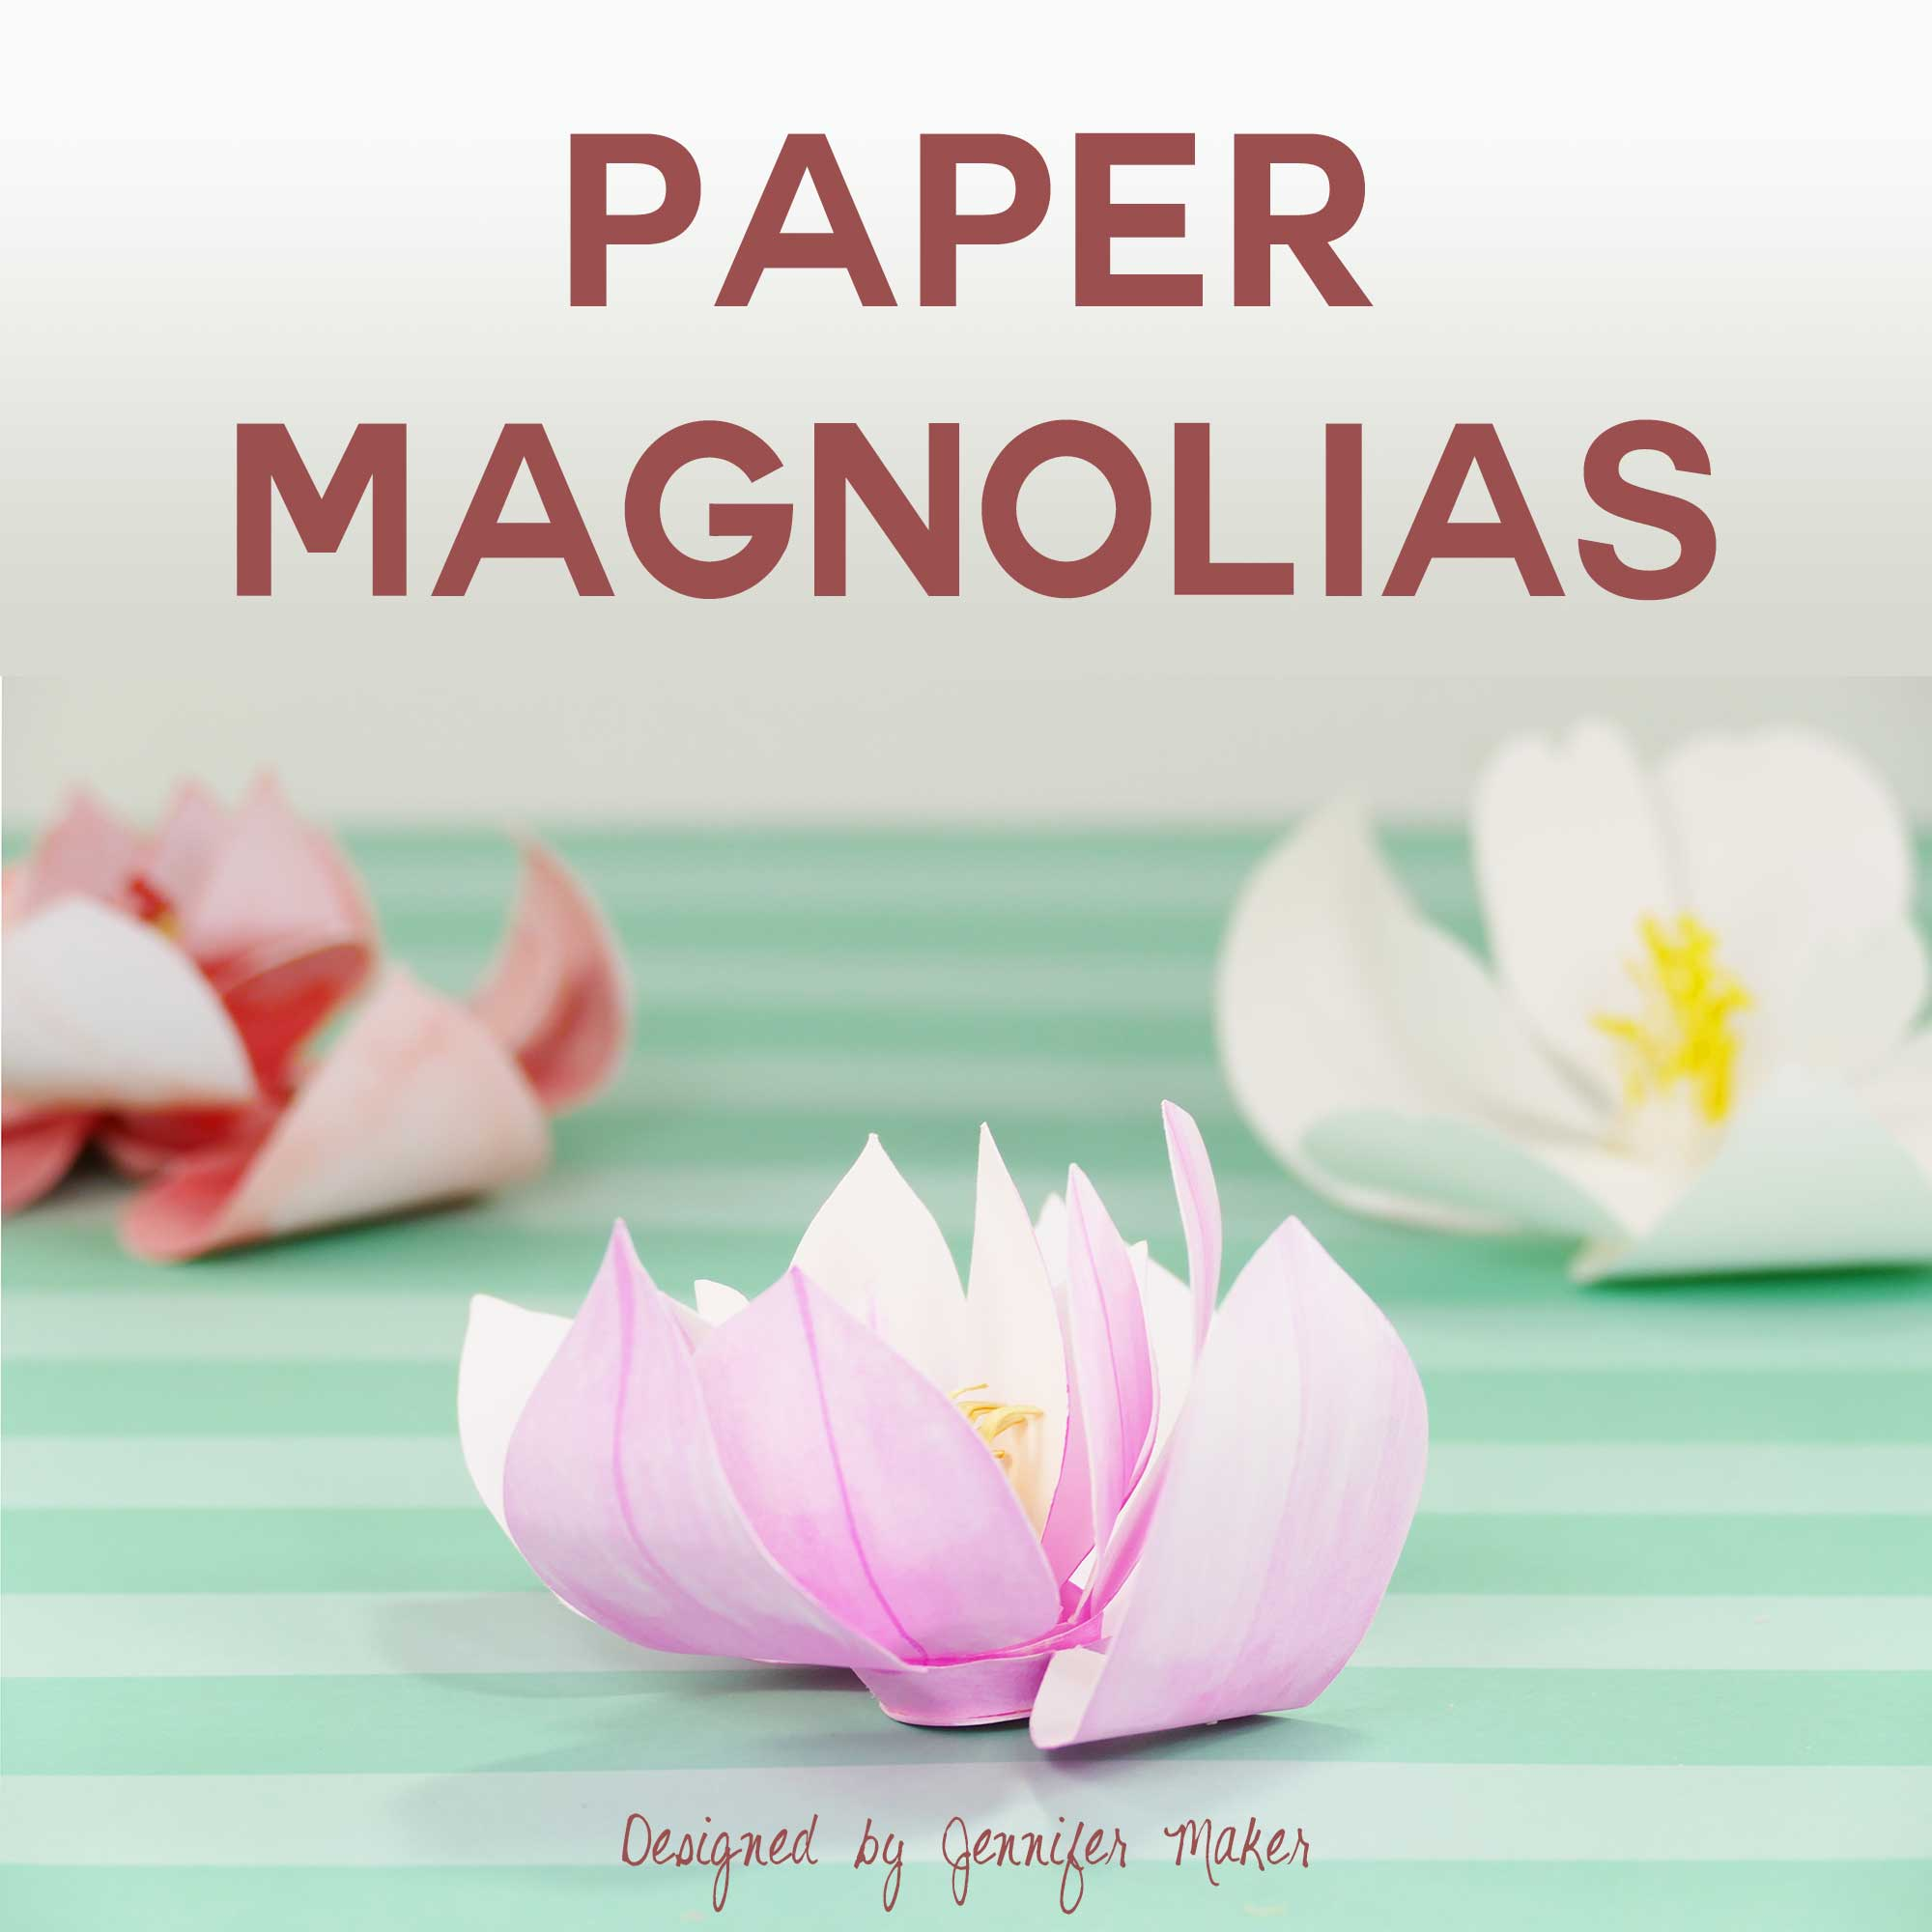 DIY Paper Magnolias Will Brighten Your Day - Jennifer Maker